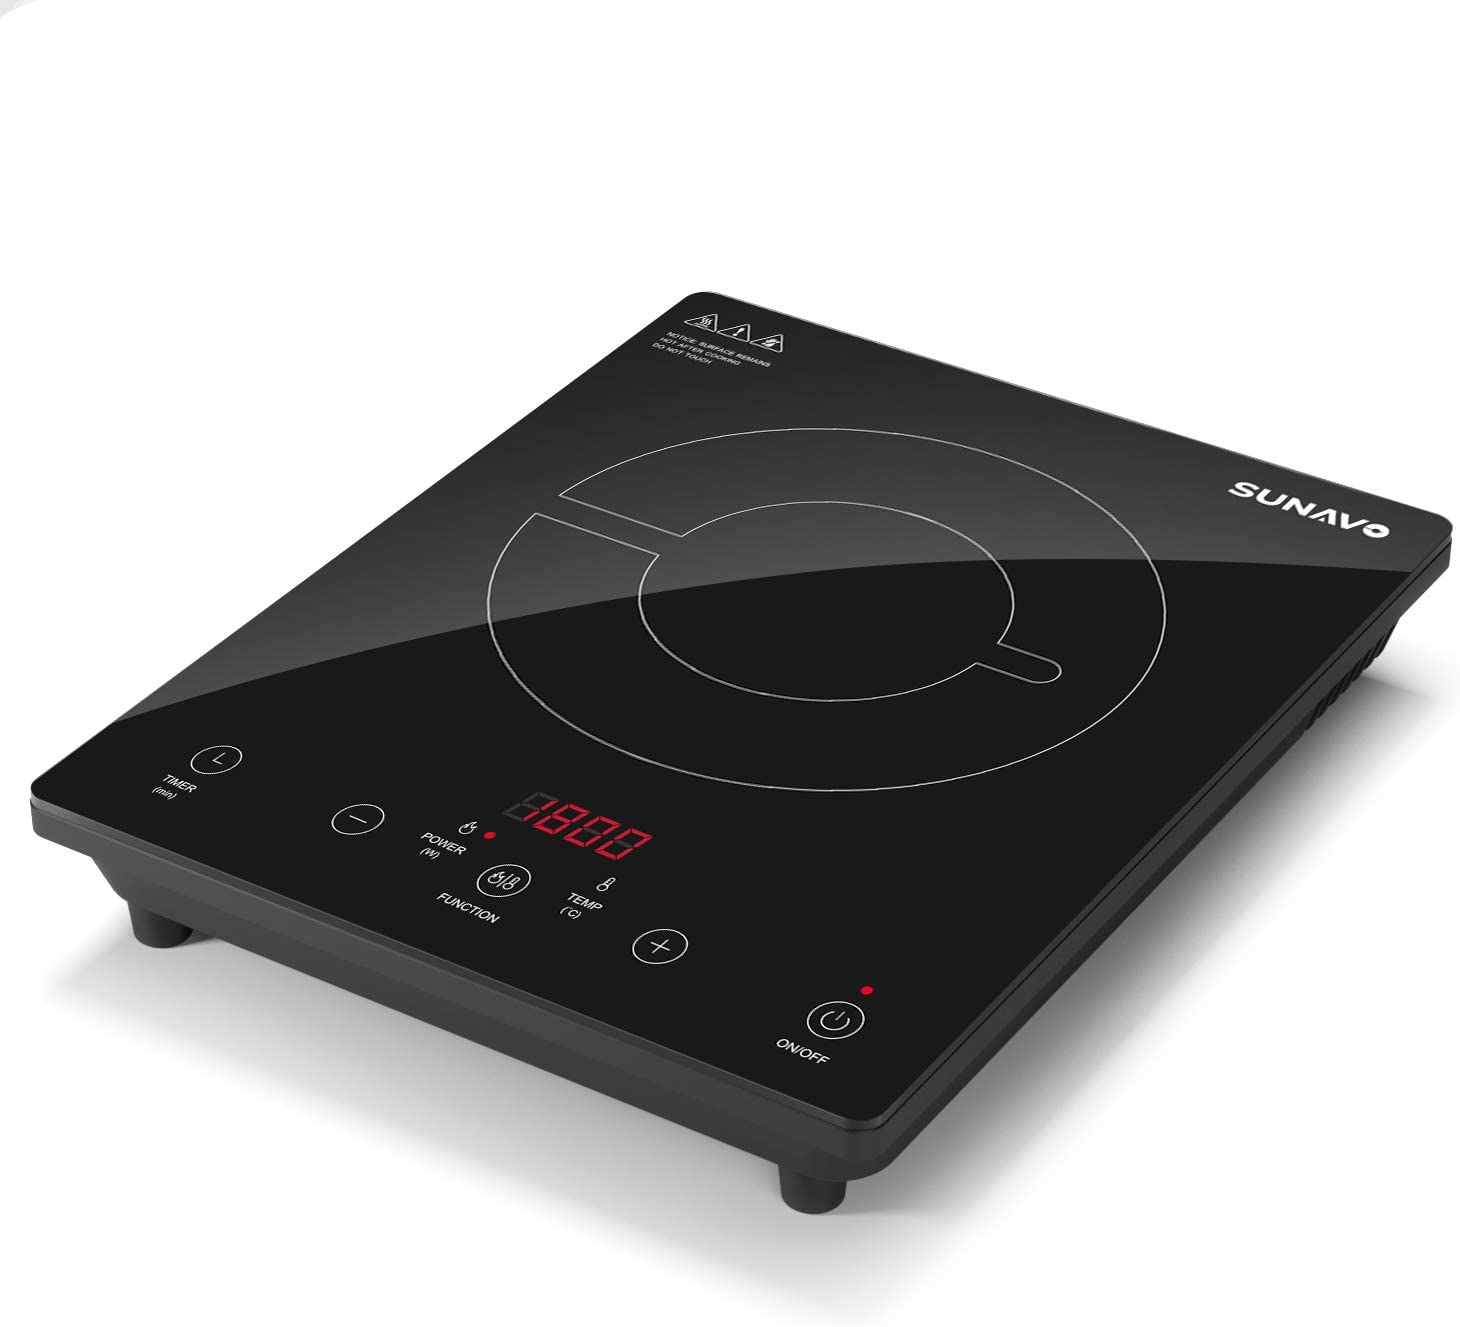 Amazon Com Sunavo Portable Induction Cooktop 1800w Sensor Touch Induction Burner With Kids Safety Lock 15 Temperature Power Setting Countertop Burner With Timer Kitchen Dining